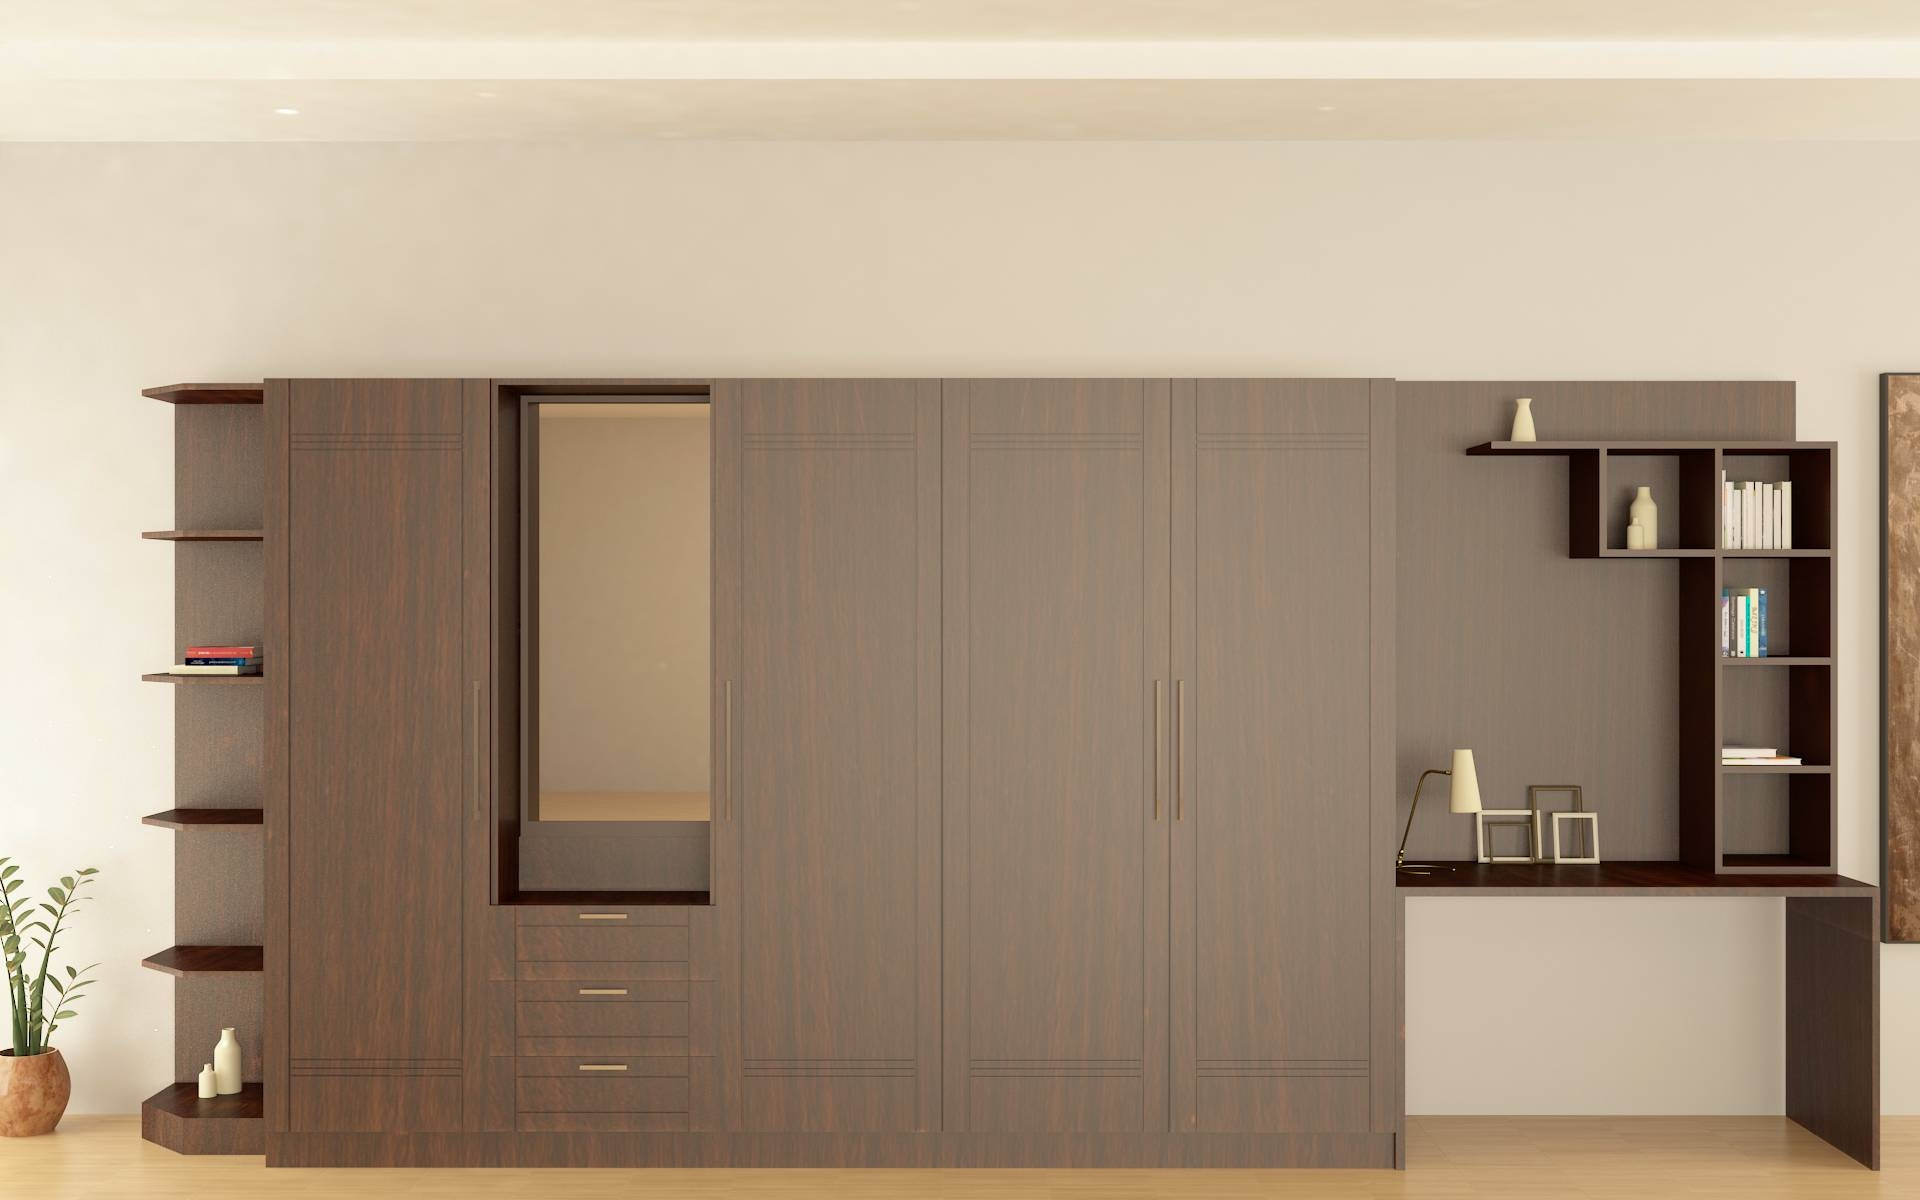 Buy Modular, Latest, Budget Bedrooms Online India - Homelane regarding Country Style Wardrobes (Image 5 of 15)